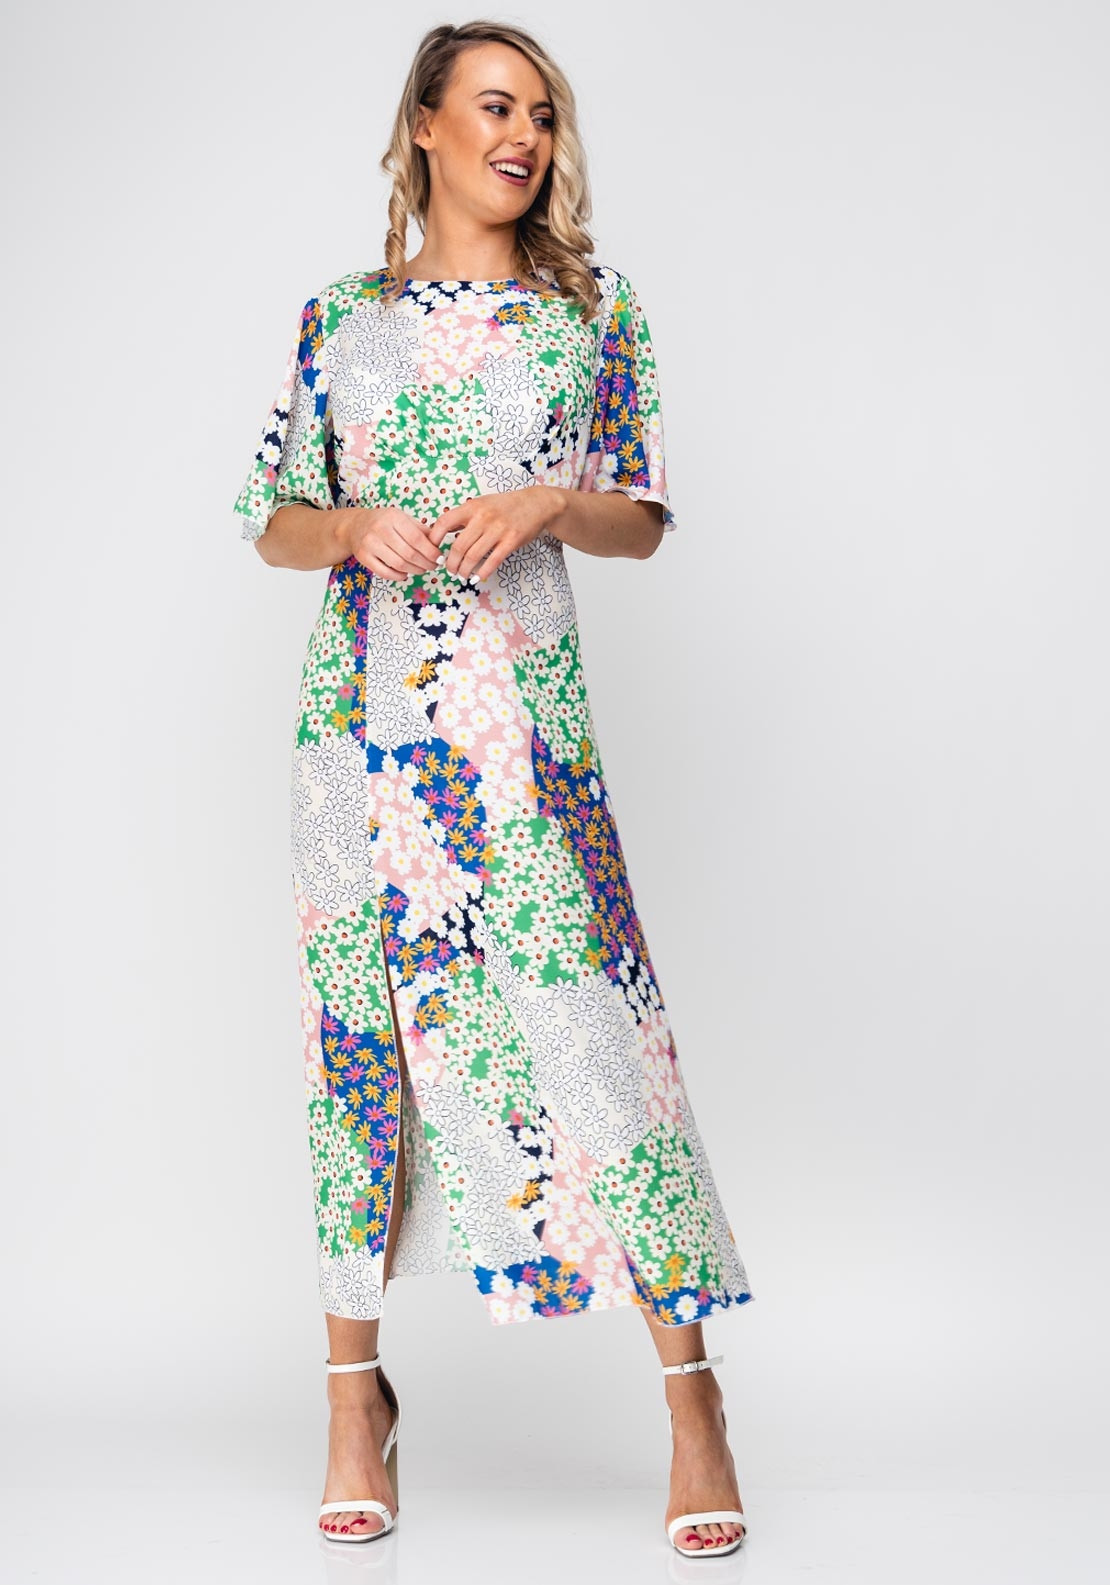 fcd020db79c5 Seventy1 Patchwork Flower Long Dress, Ivory. Be the first to review this  product